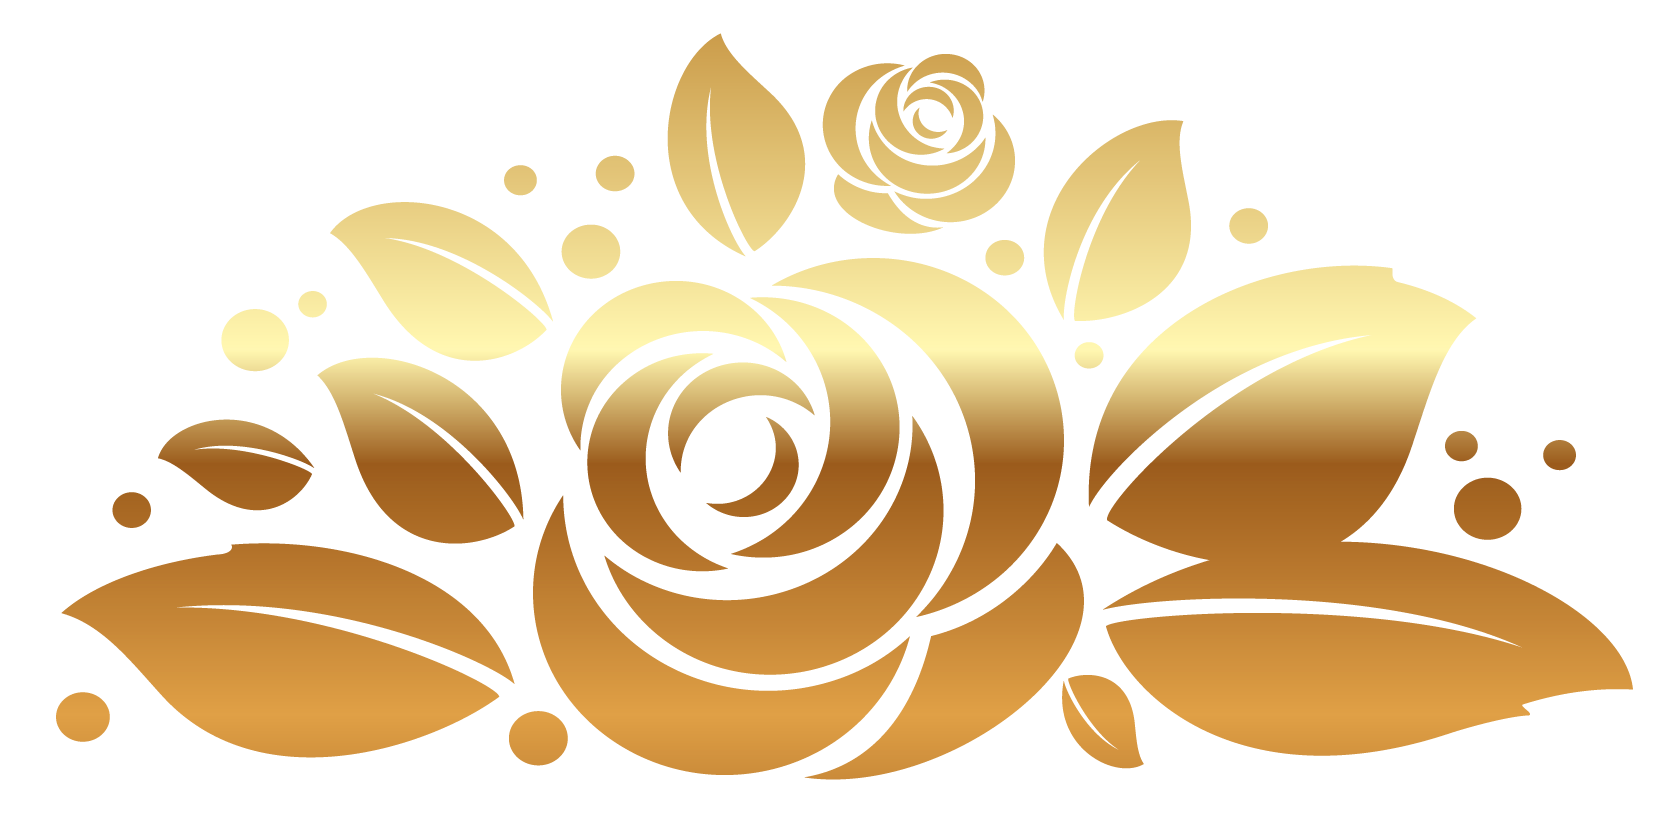 Gold floral clipart graphic black and white library Free Gold Roses Cliparts, Download Free Clip Art, Free Clip Art on ... graphic black and white library